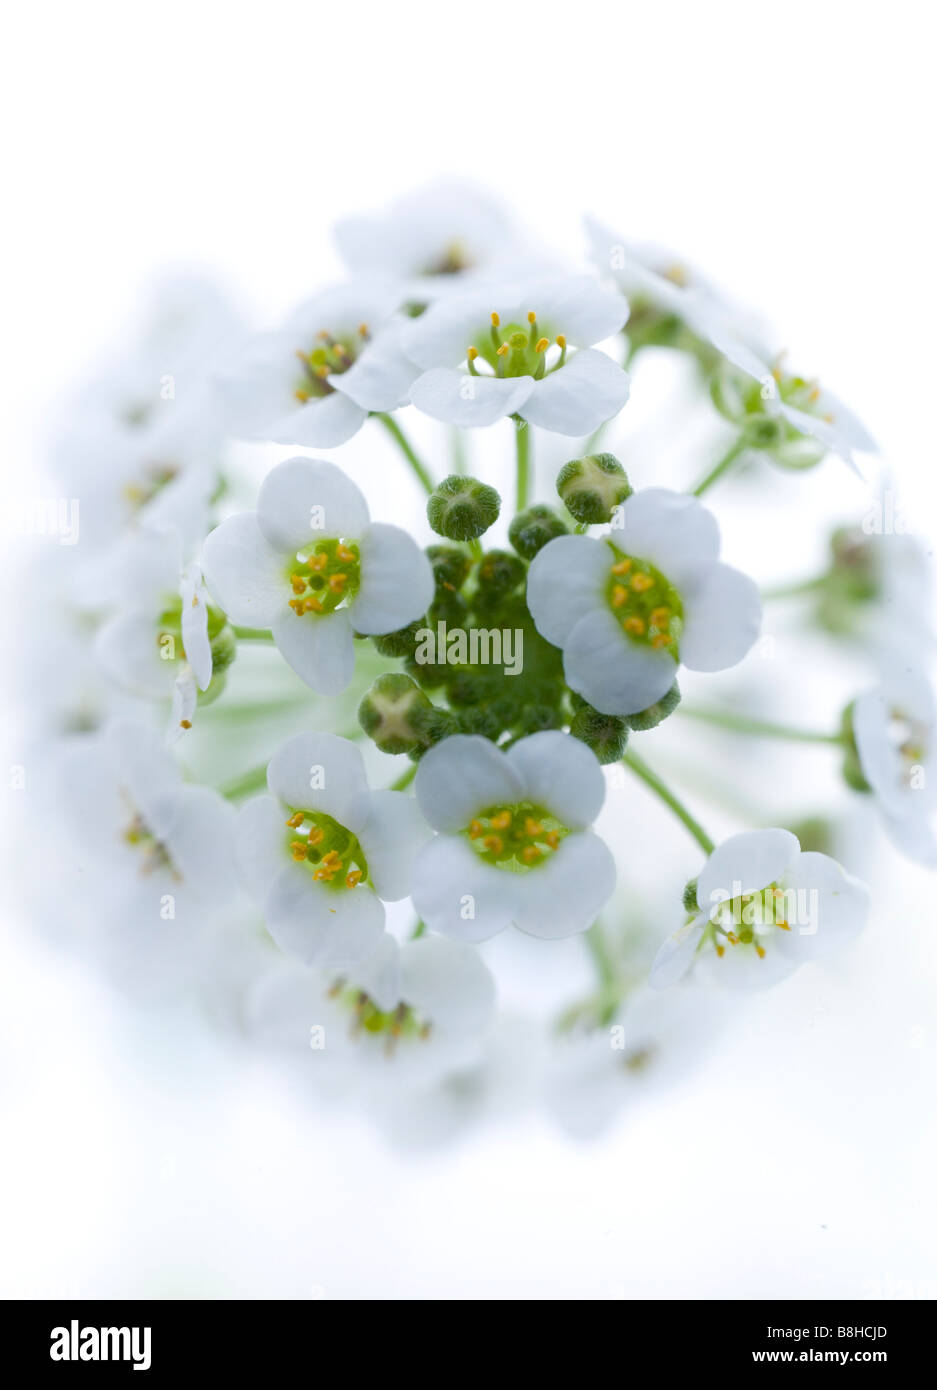 Close up/macro shot of white flower shot in the studio against a white background. - Stock Image